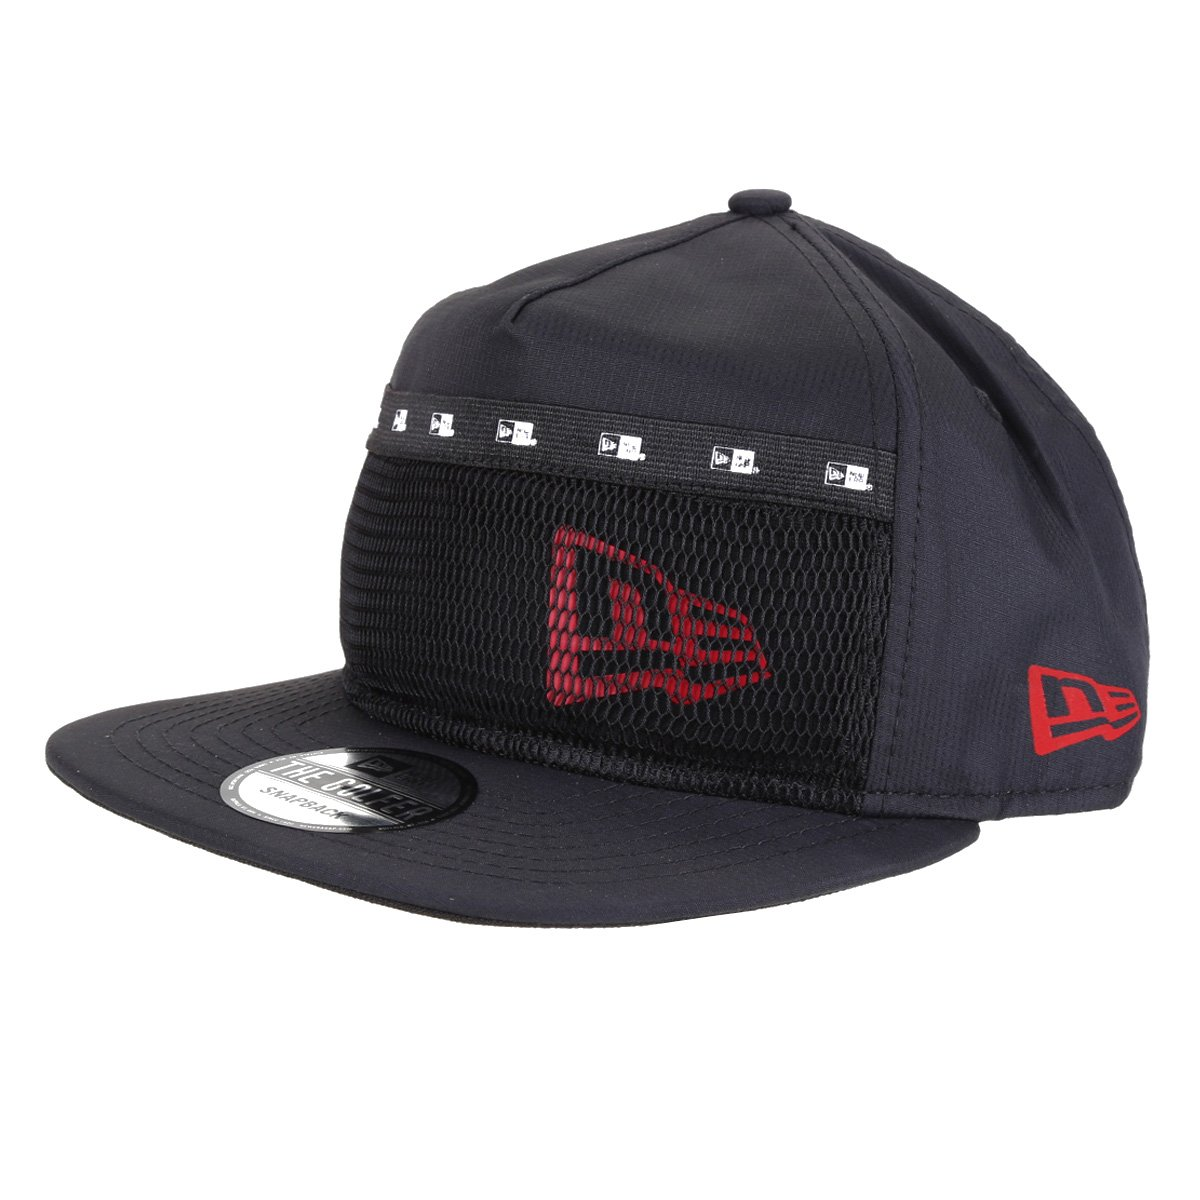 Boné New Era Aba Reta Snapback Utilitary Pocket Flag